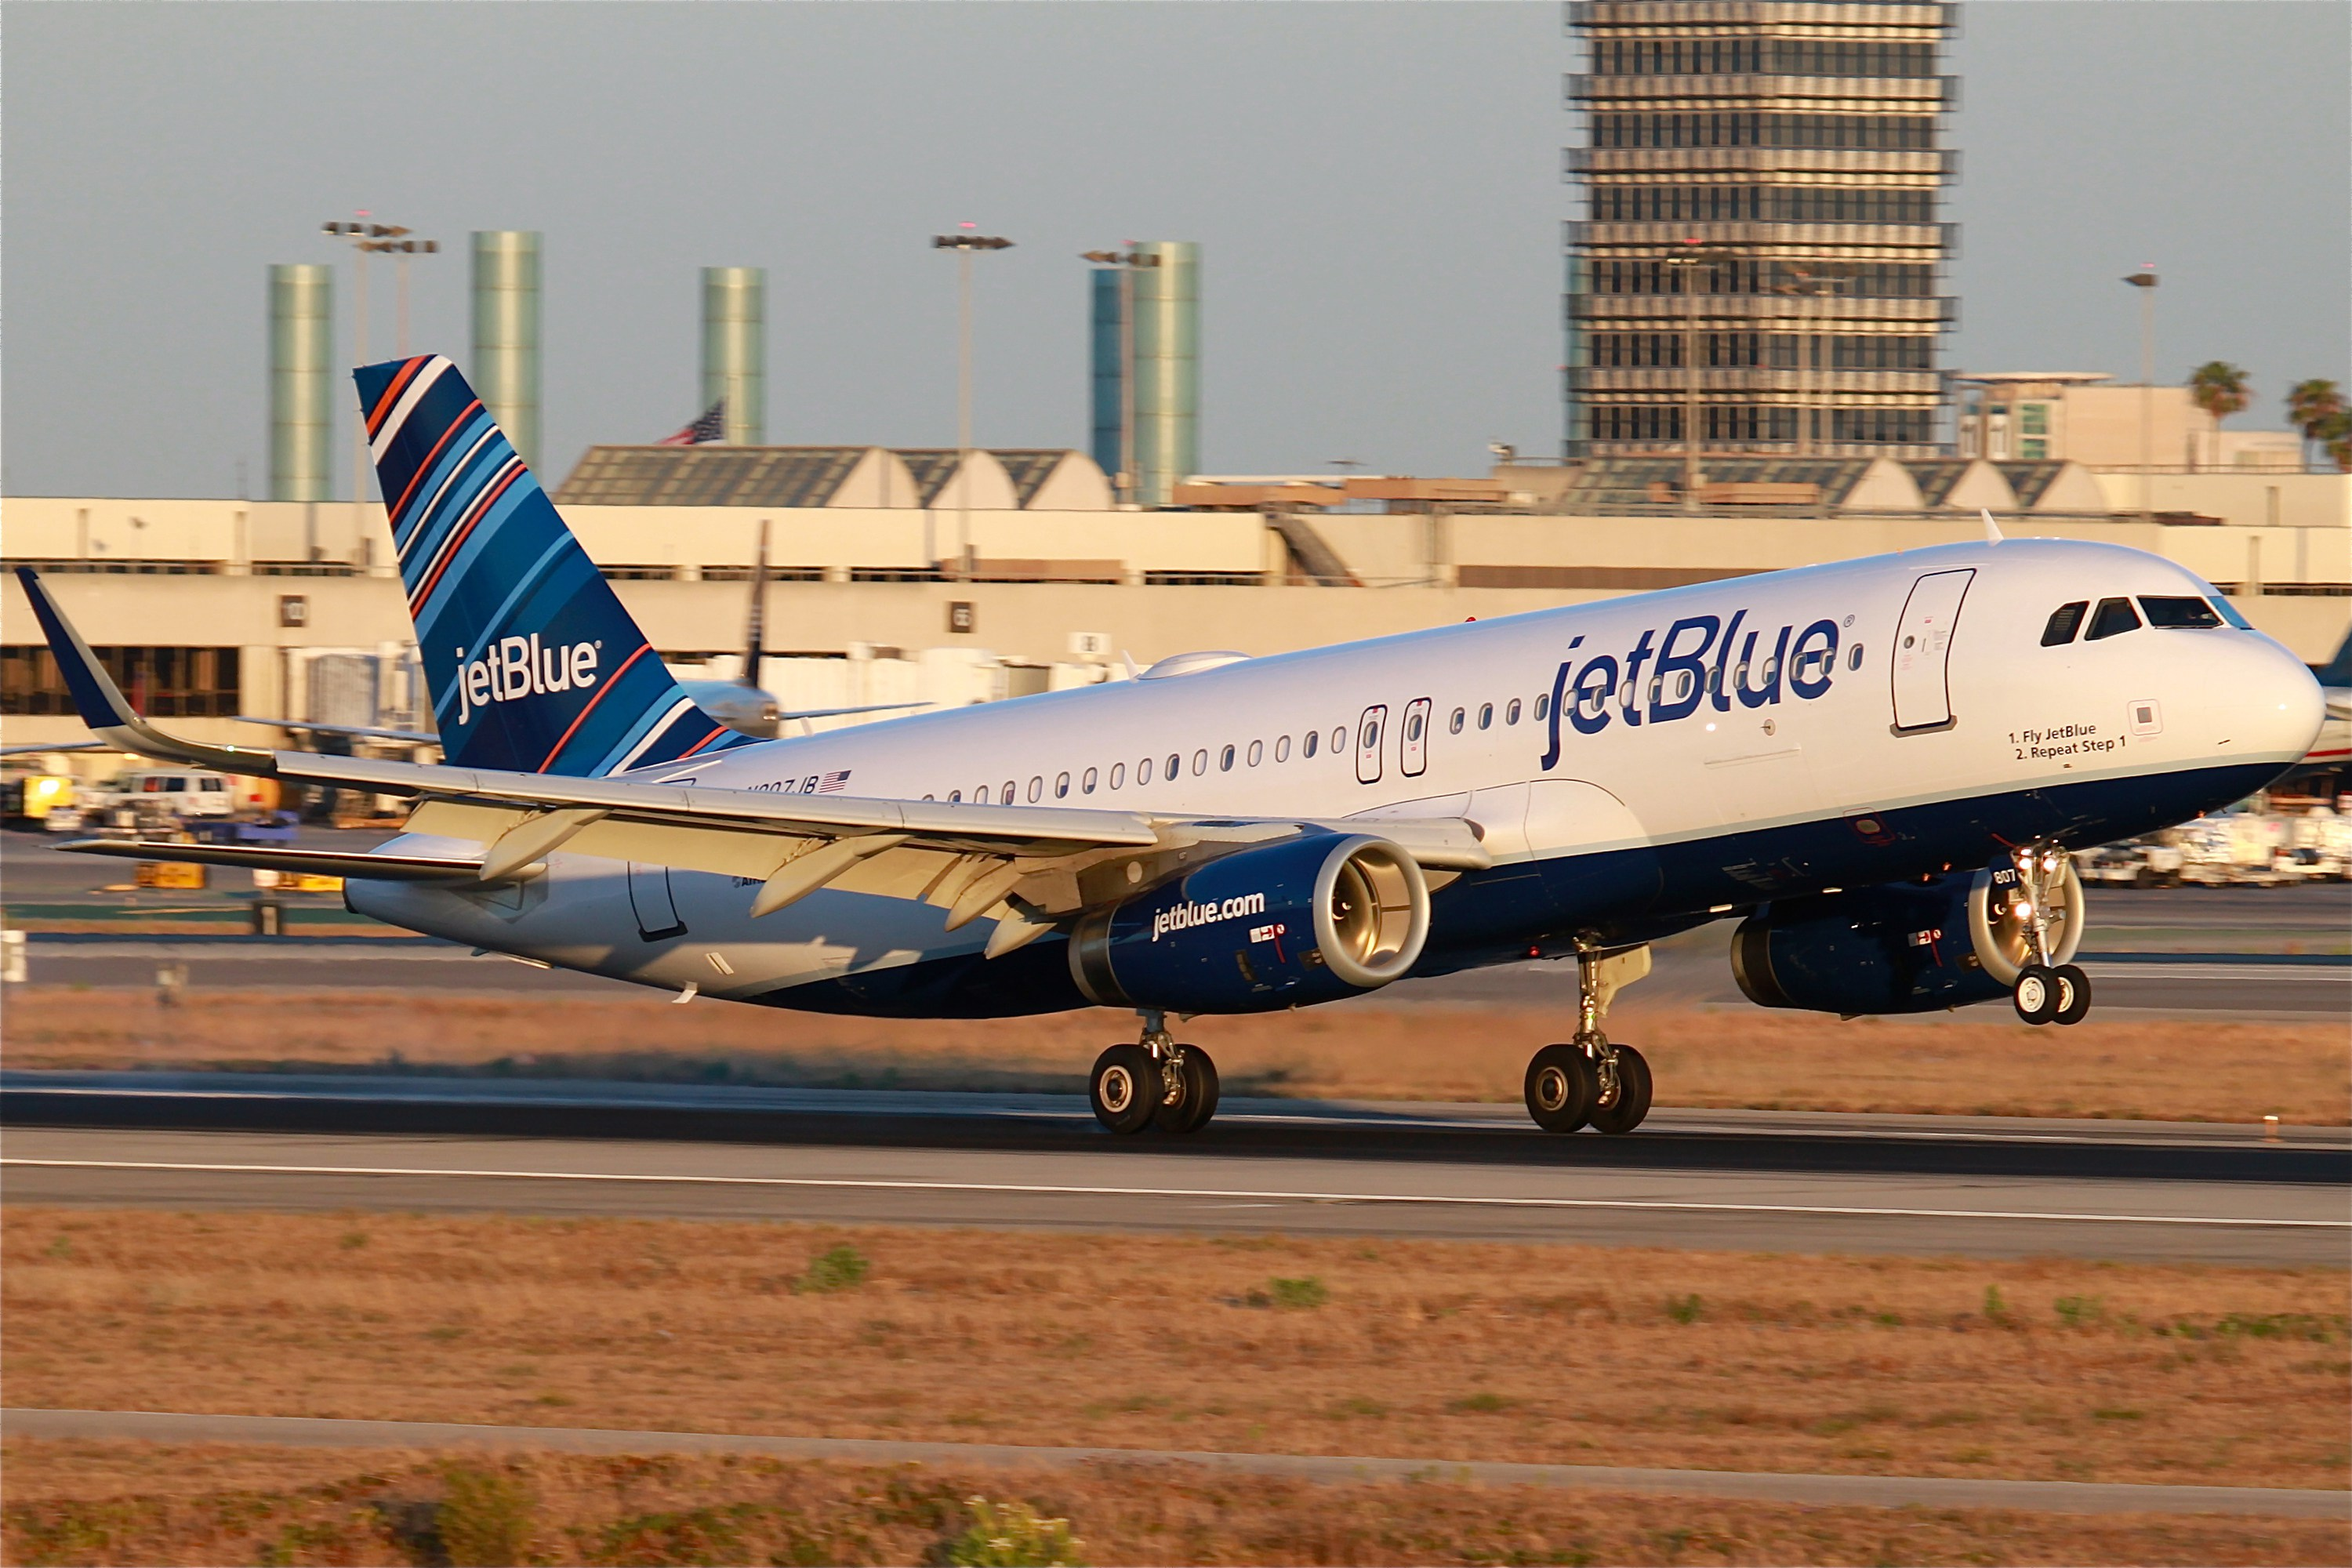 Jetblue_A320_w-_Sharklets_12616578033